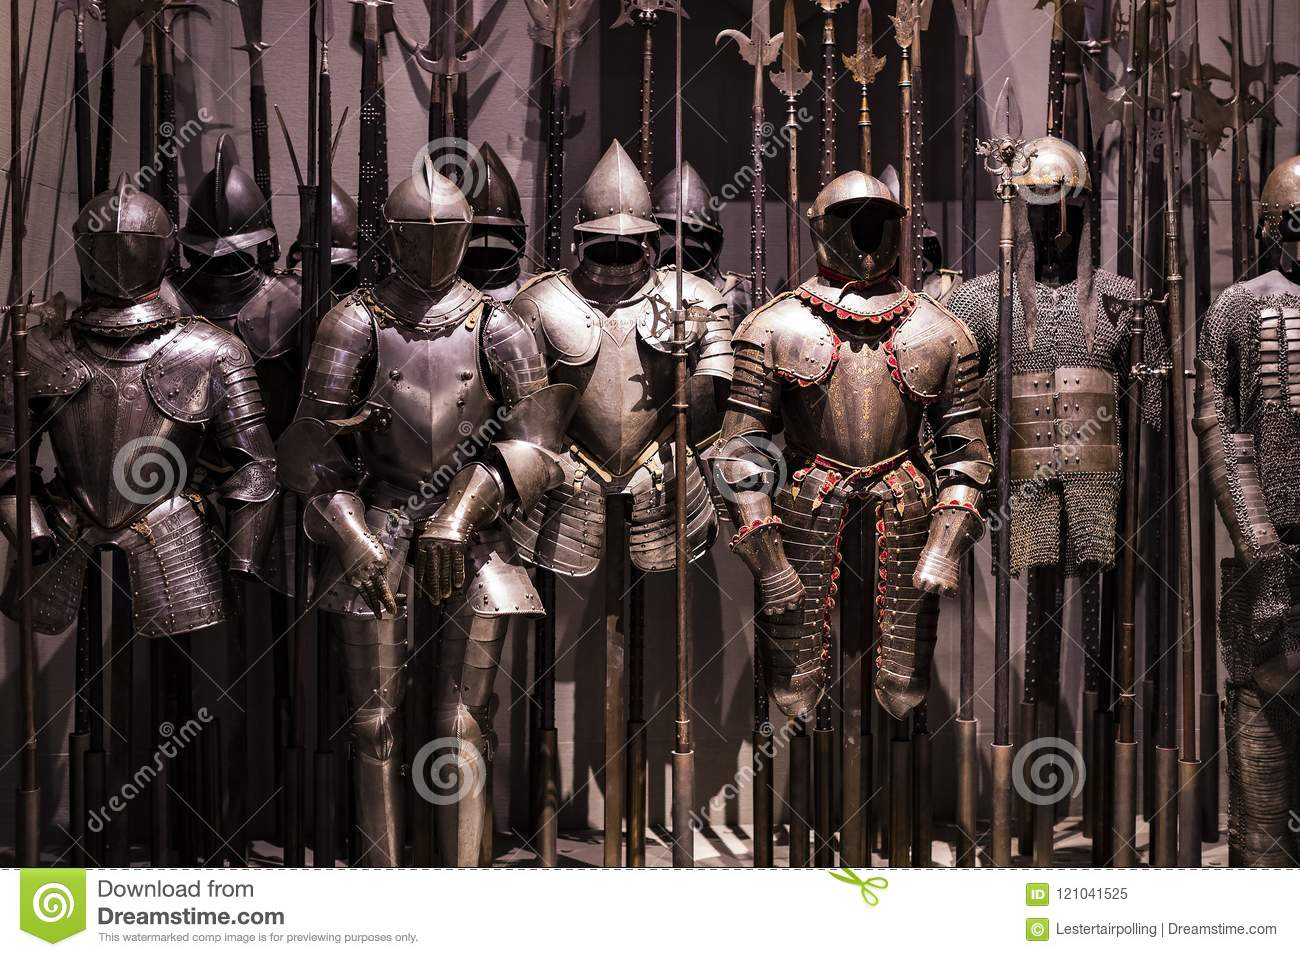 museum of the poldis pezzoli knights hall with samples of medieval